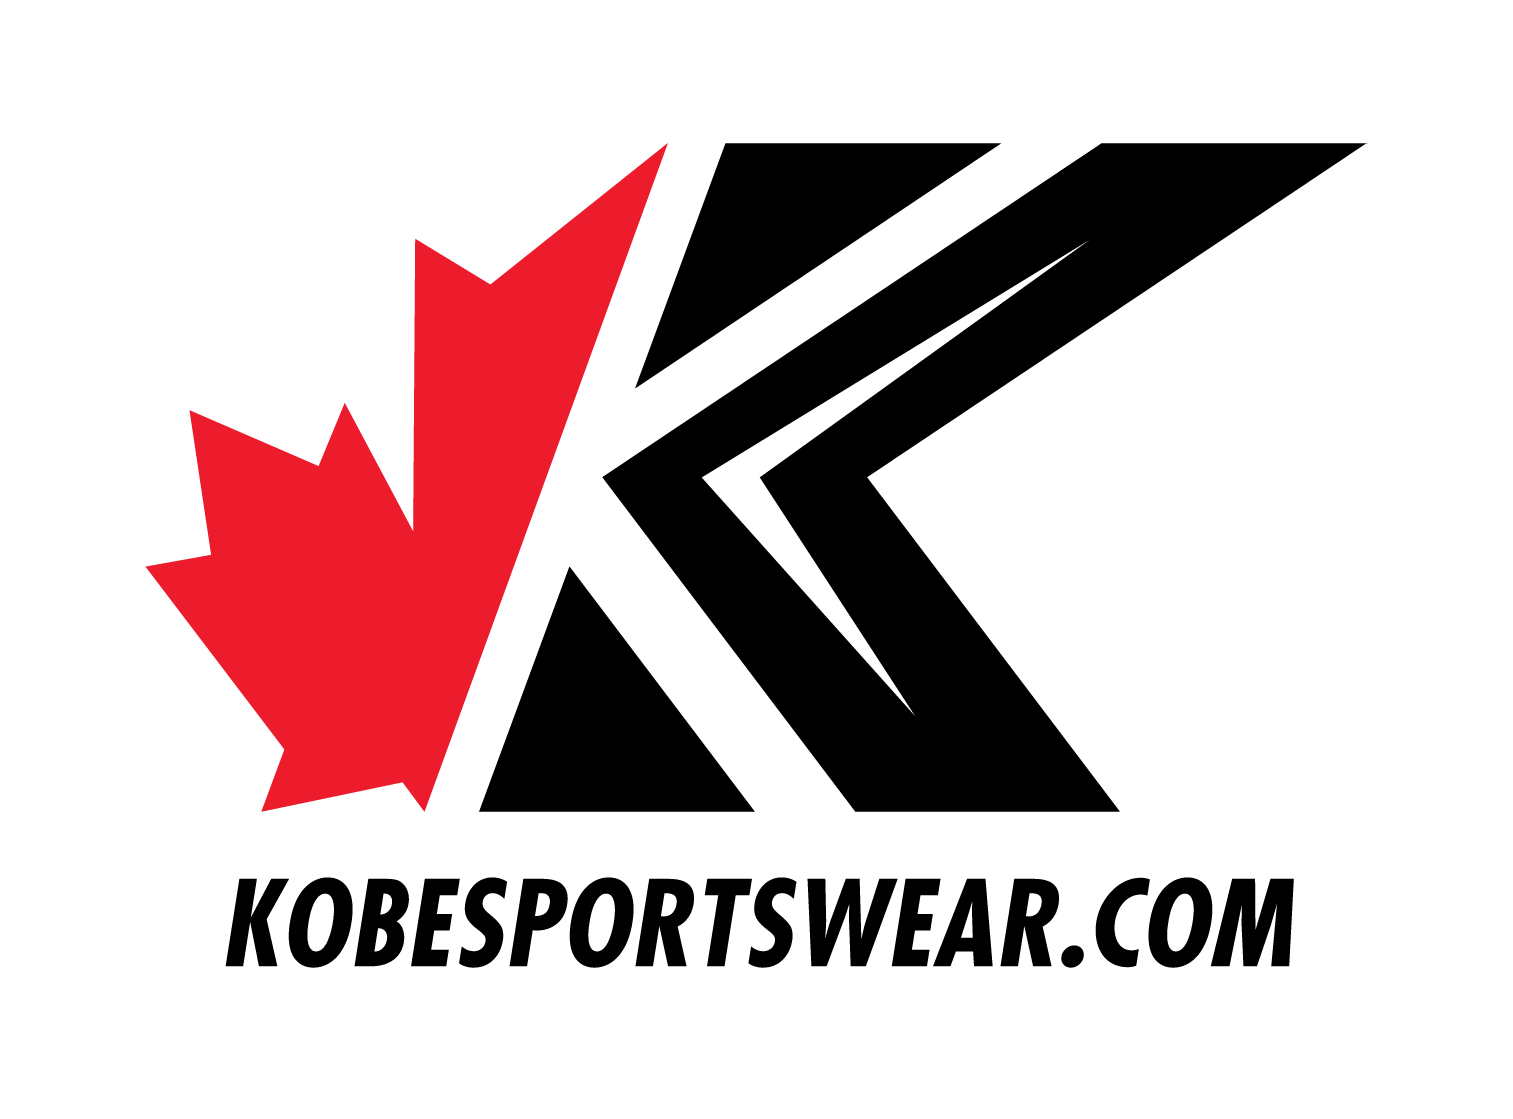 Kobe_Logo_w_website_BL.PNG (50 KB)